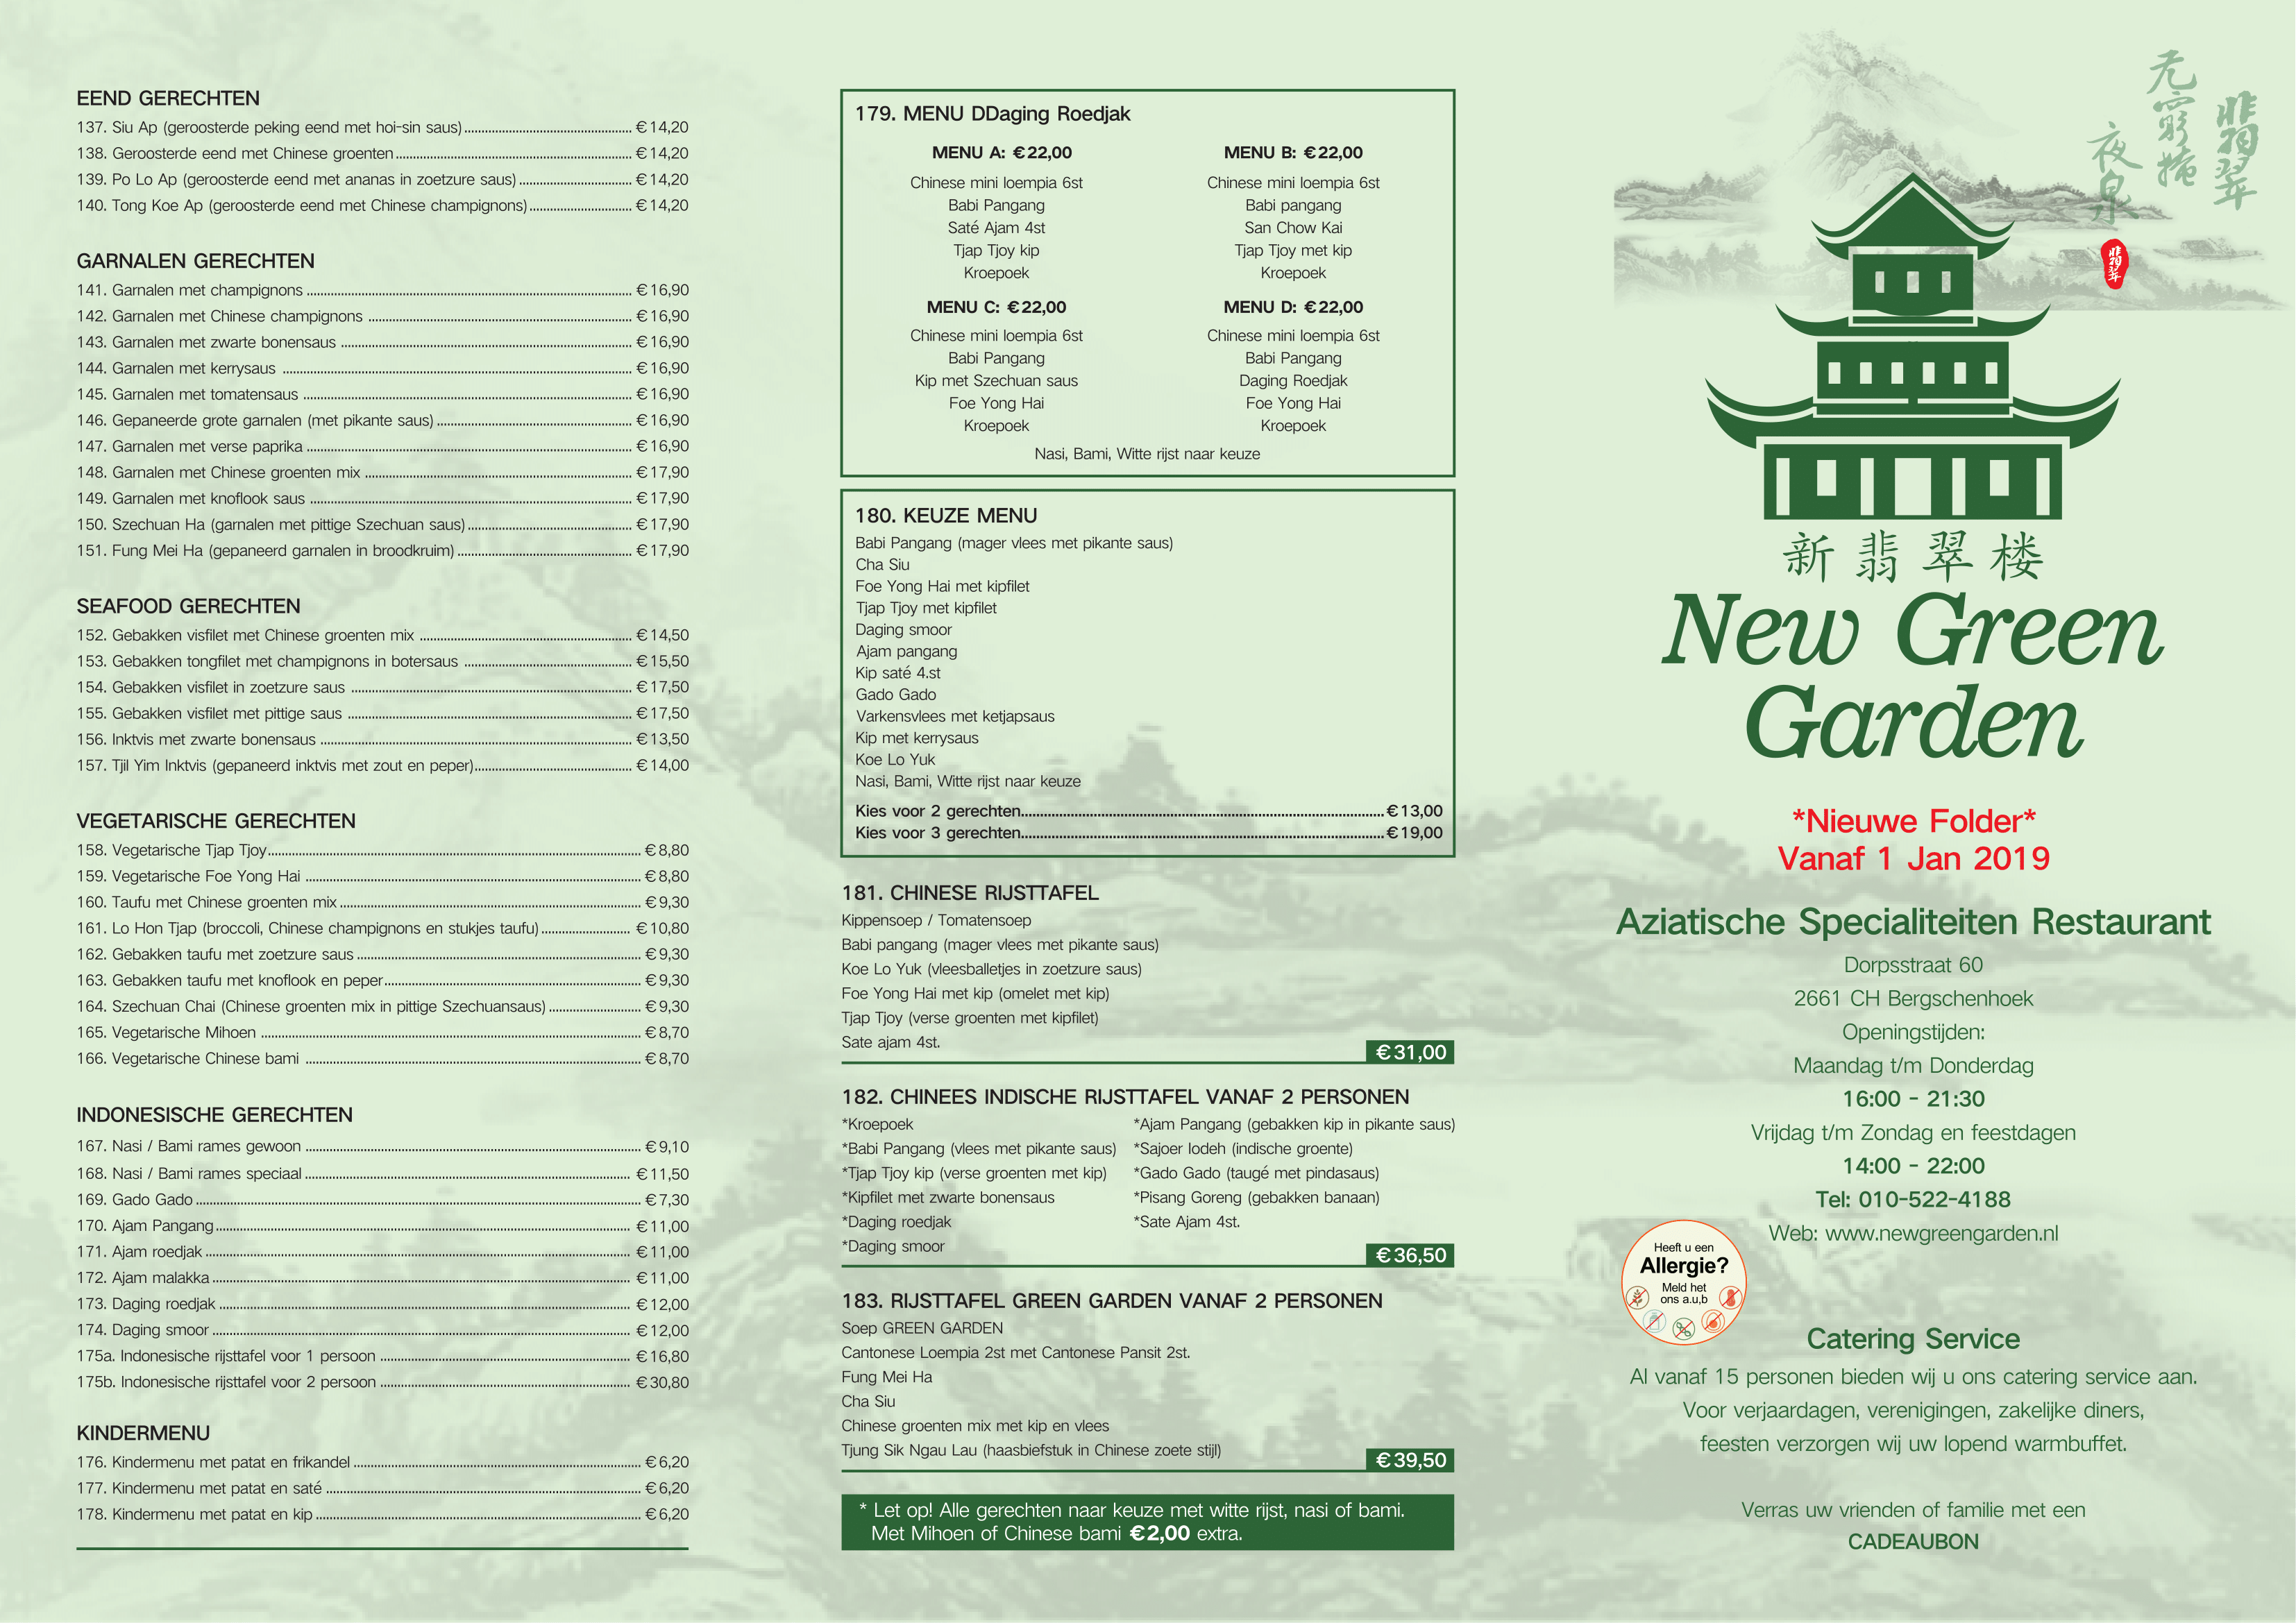 New Green Garden Menu